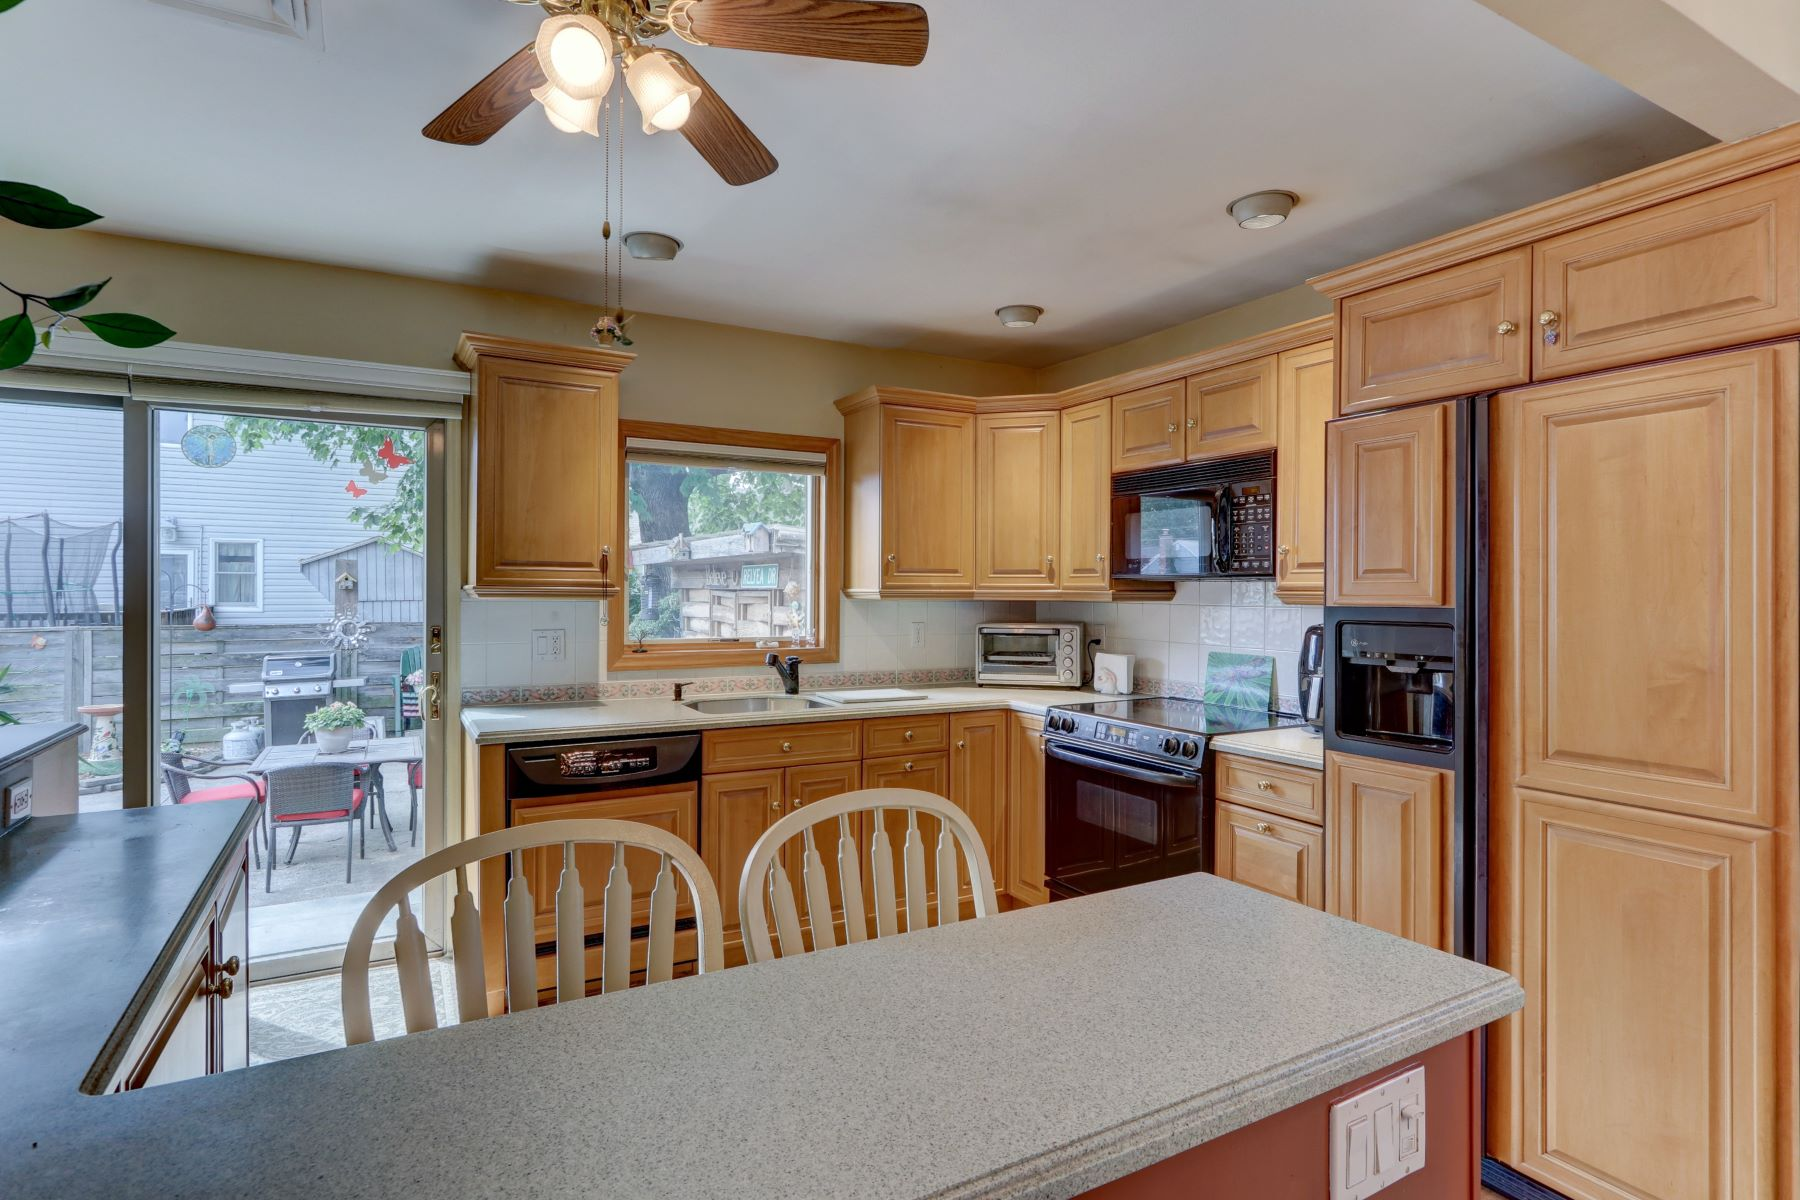 Single Family Homes for Active at Merrick 1811 Relyea Dr Merrick, New York 11566 United States